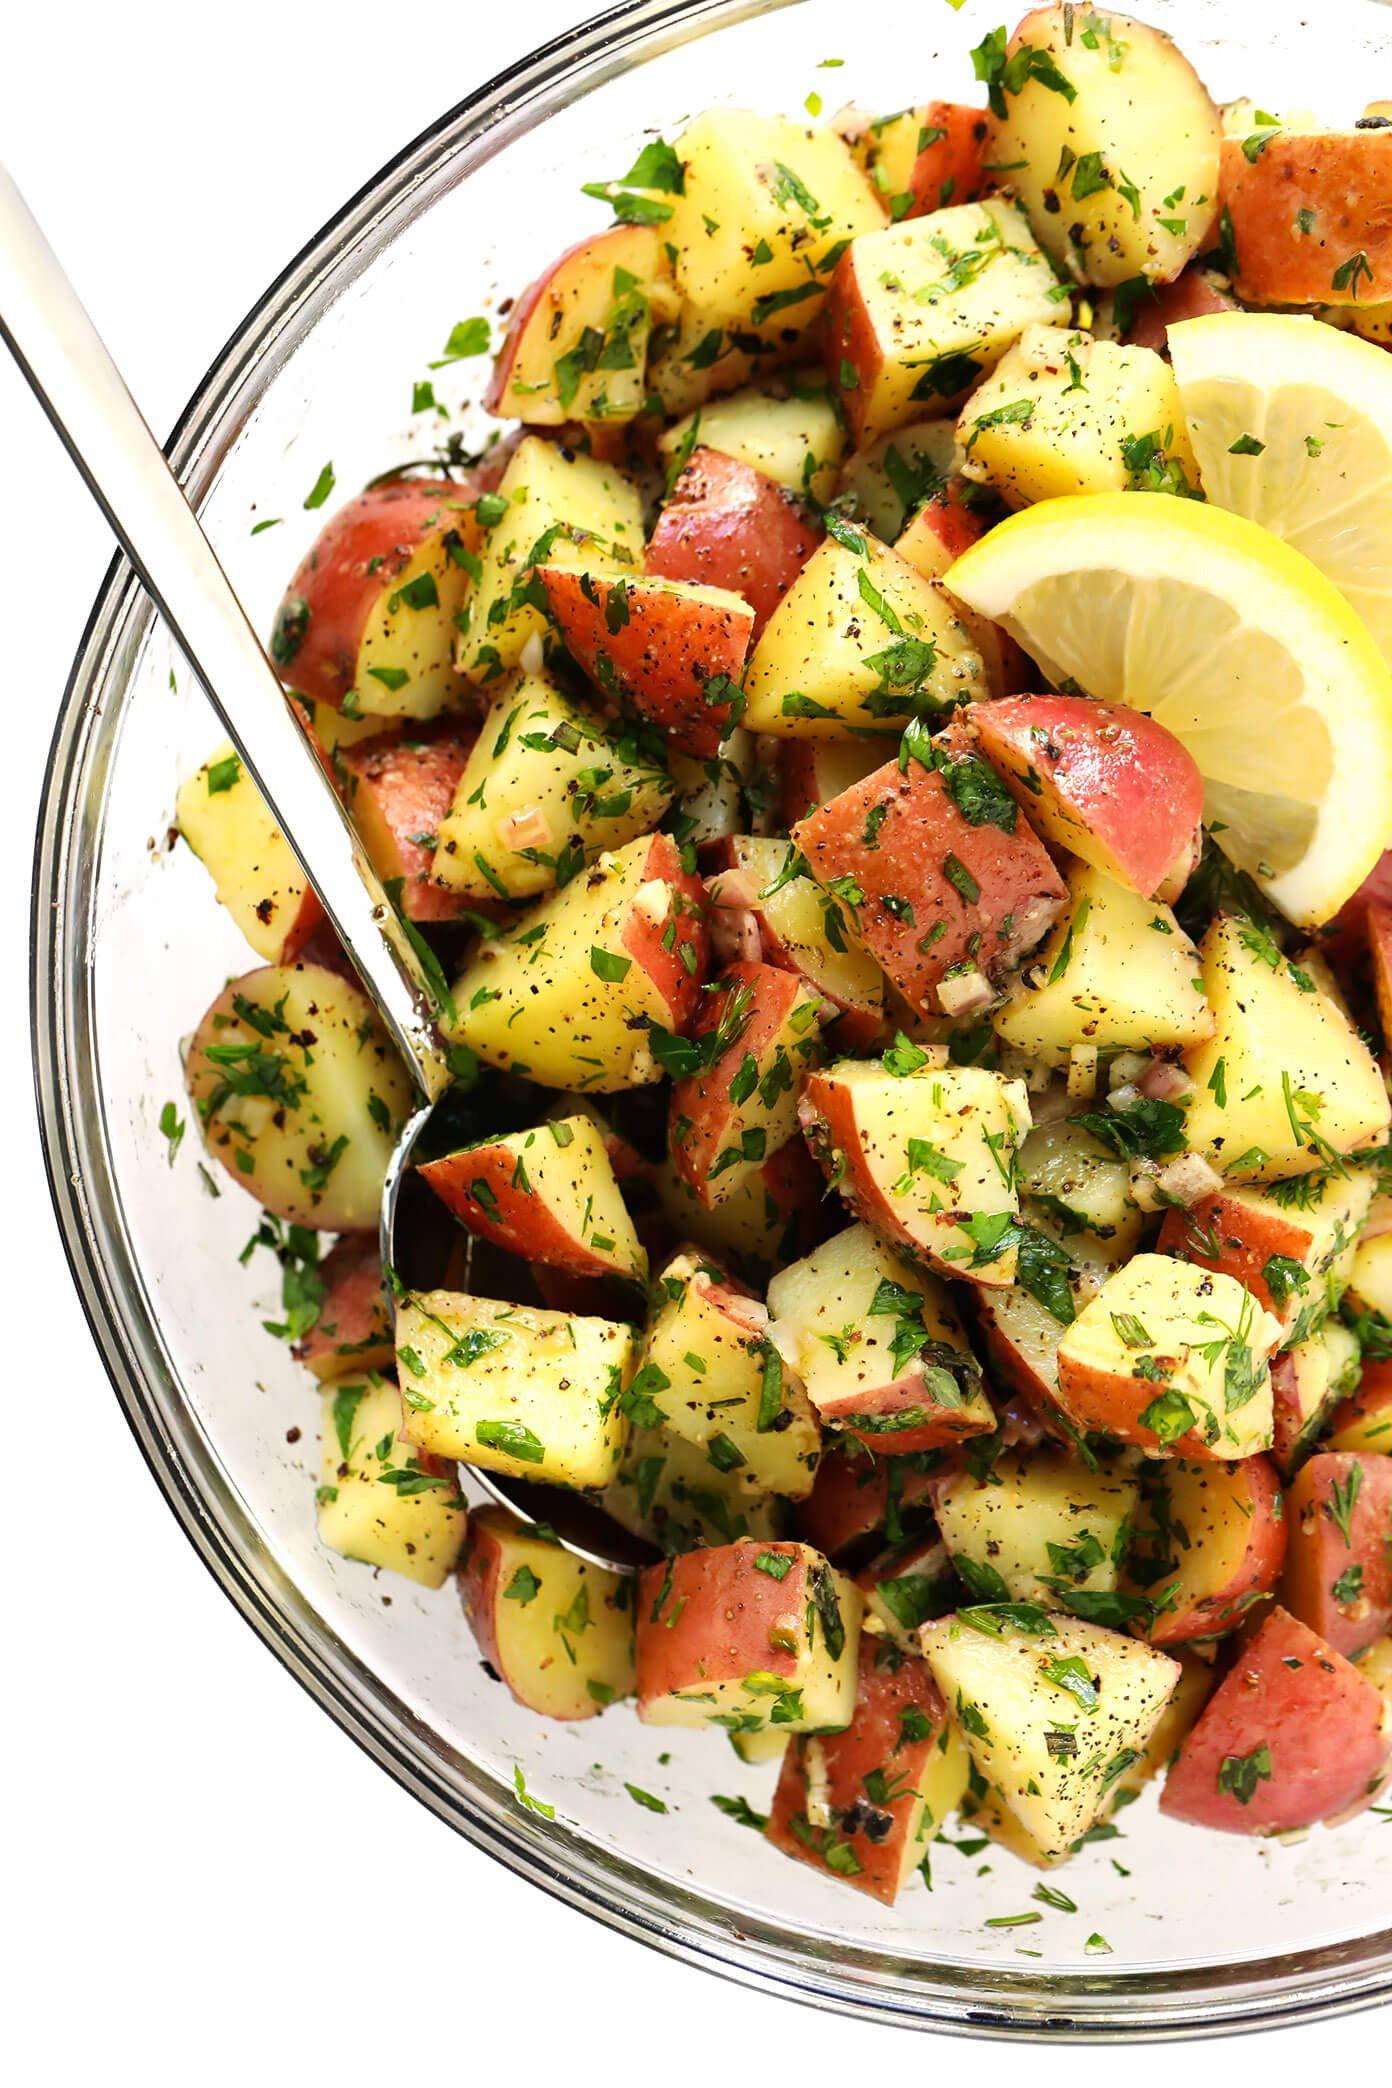 How To Make Potato Salad without Mayo